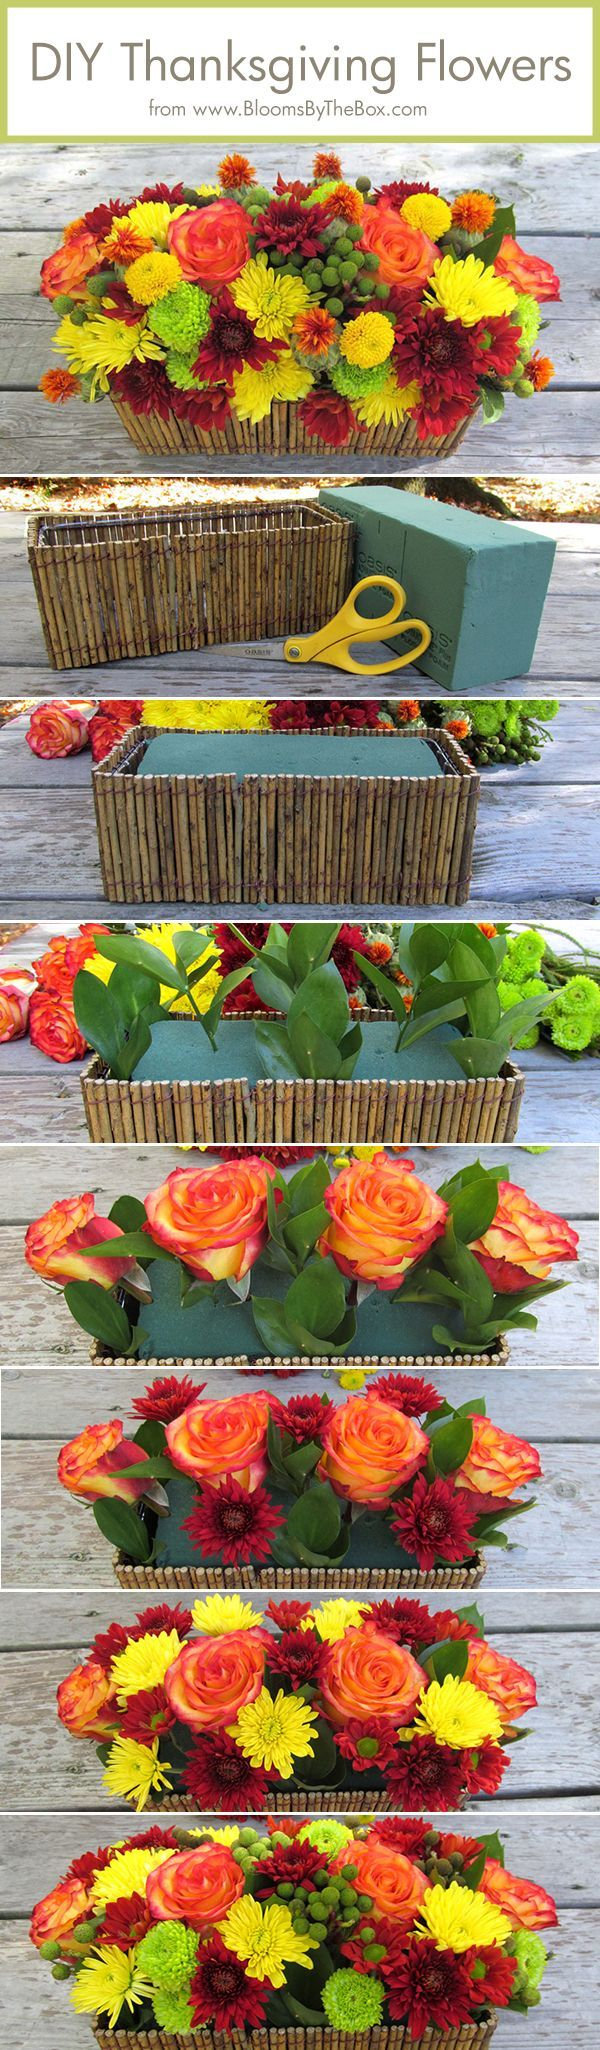 Diy thanksgiving decor pinterest - Diy Flower Turotial For Thanksgiving Decorations